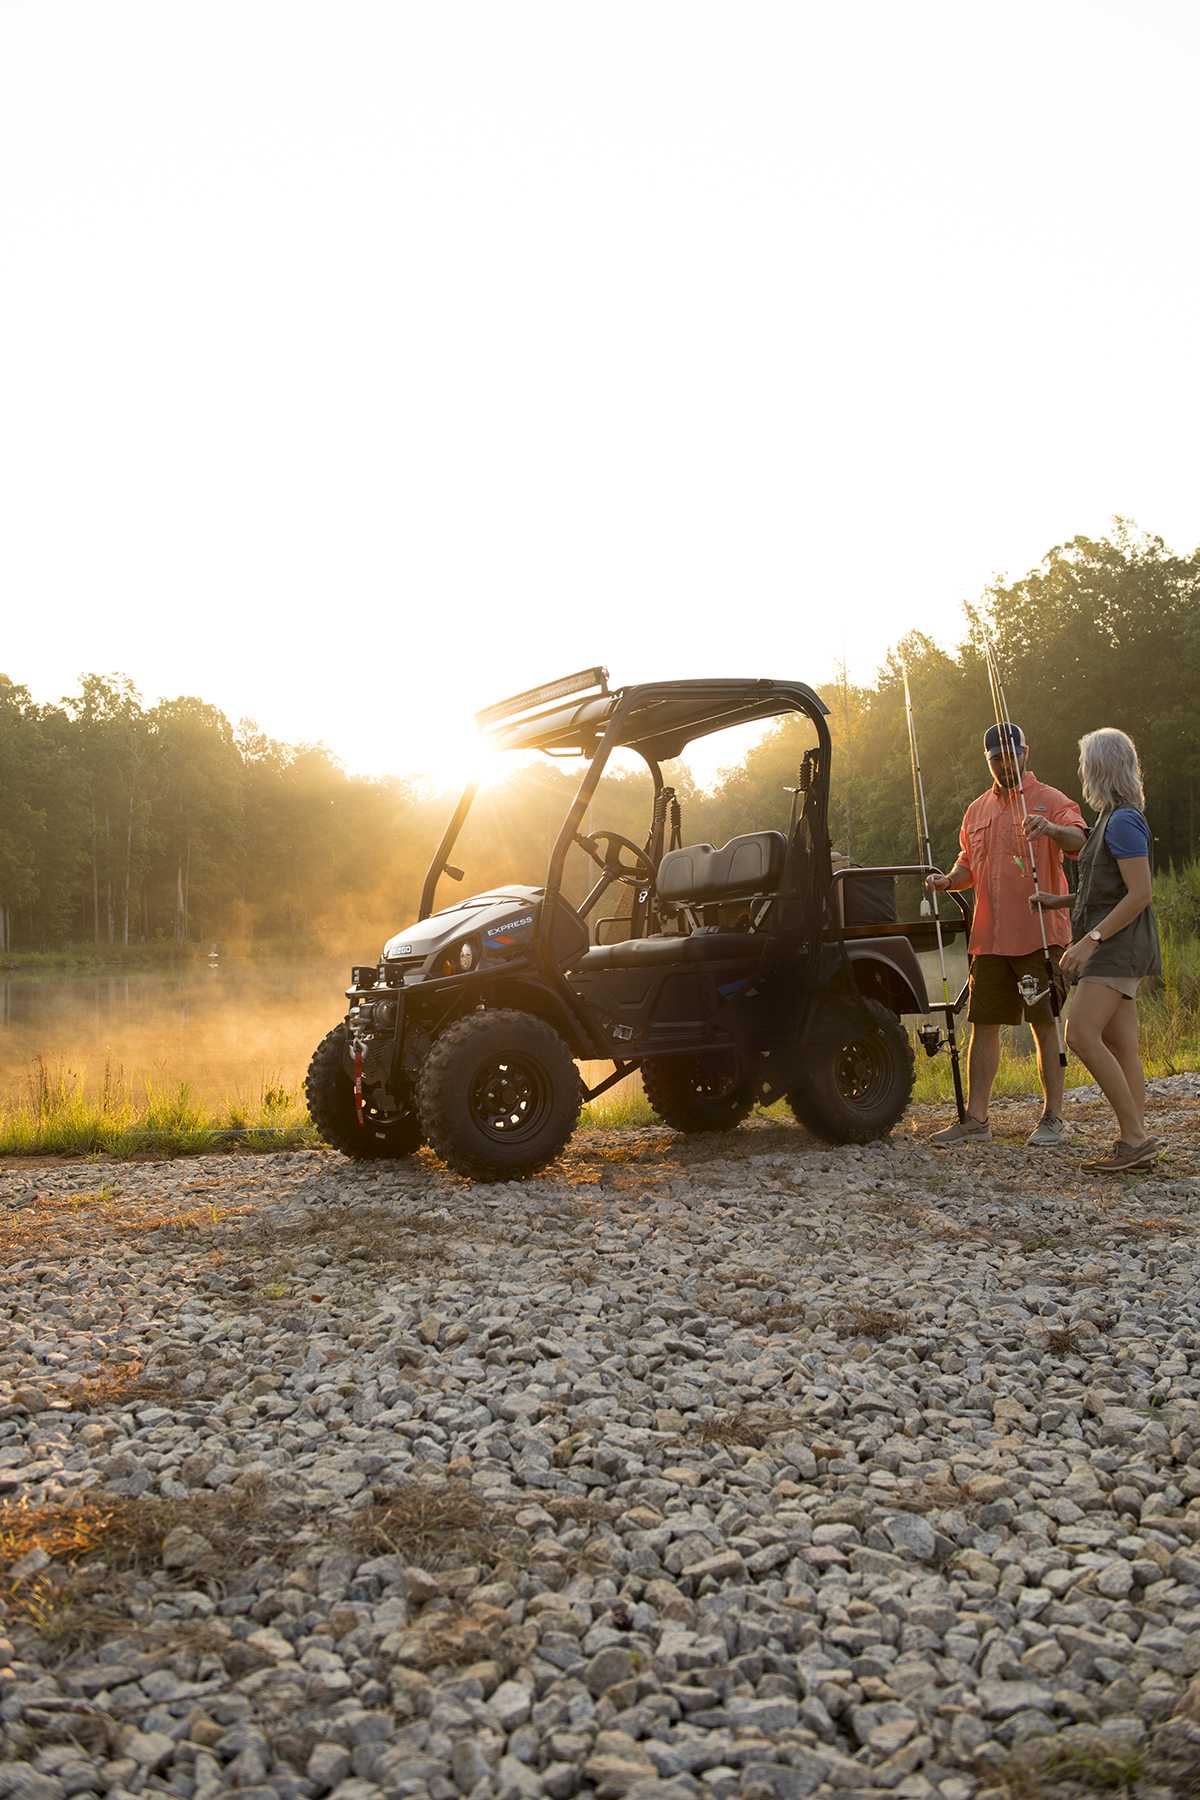 hight resolution of learn more about the express 4x4 and the complete line of e z go personal transportation vehicles at ezgo com personal